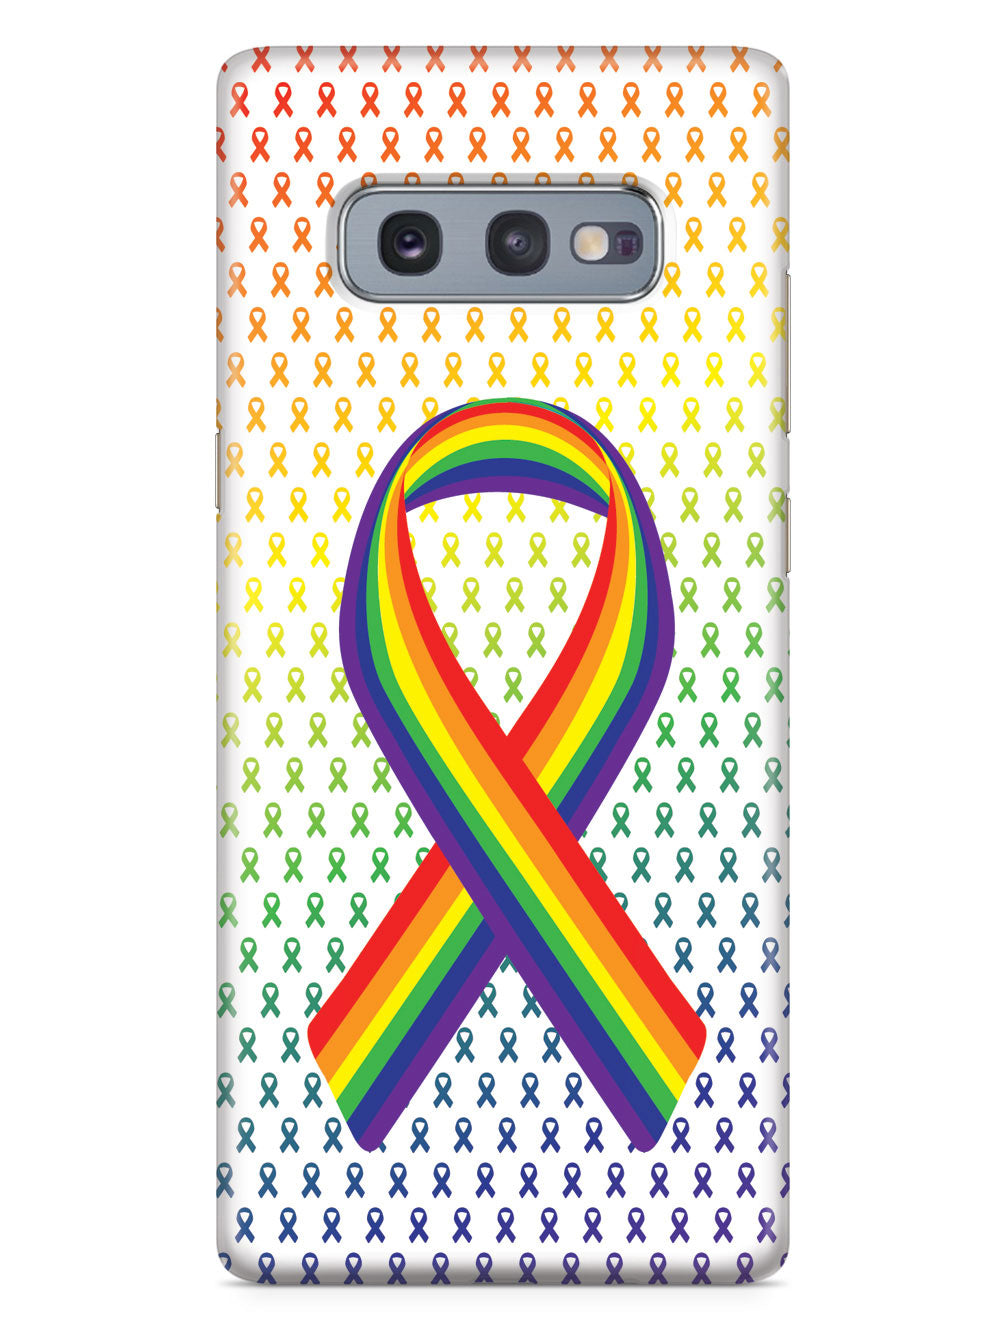 Rainbow Ribbon - LGBT Community Support - White Case